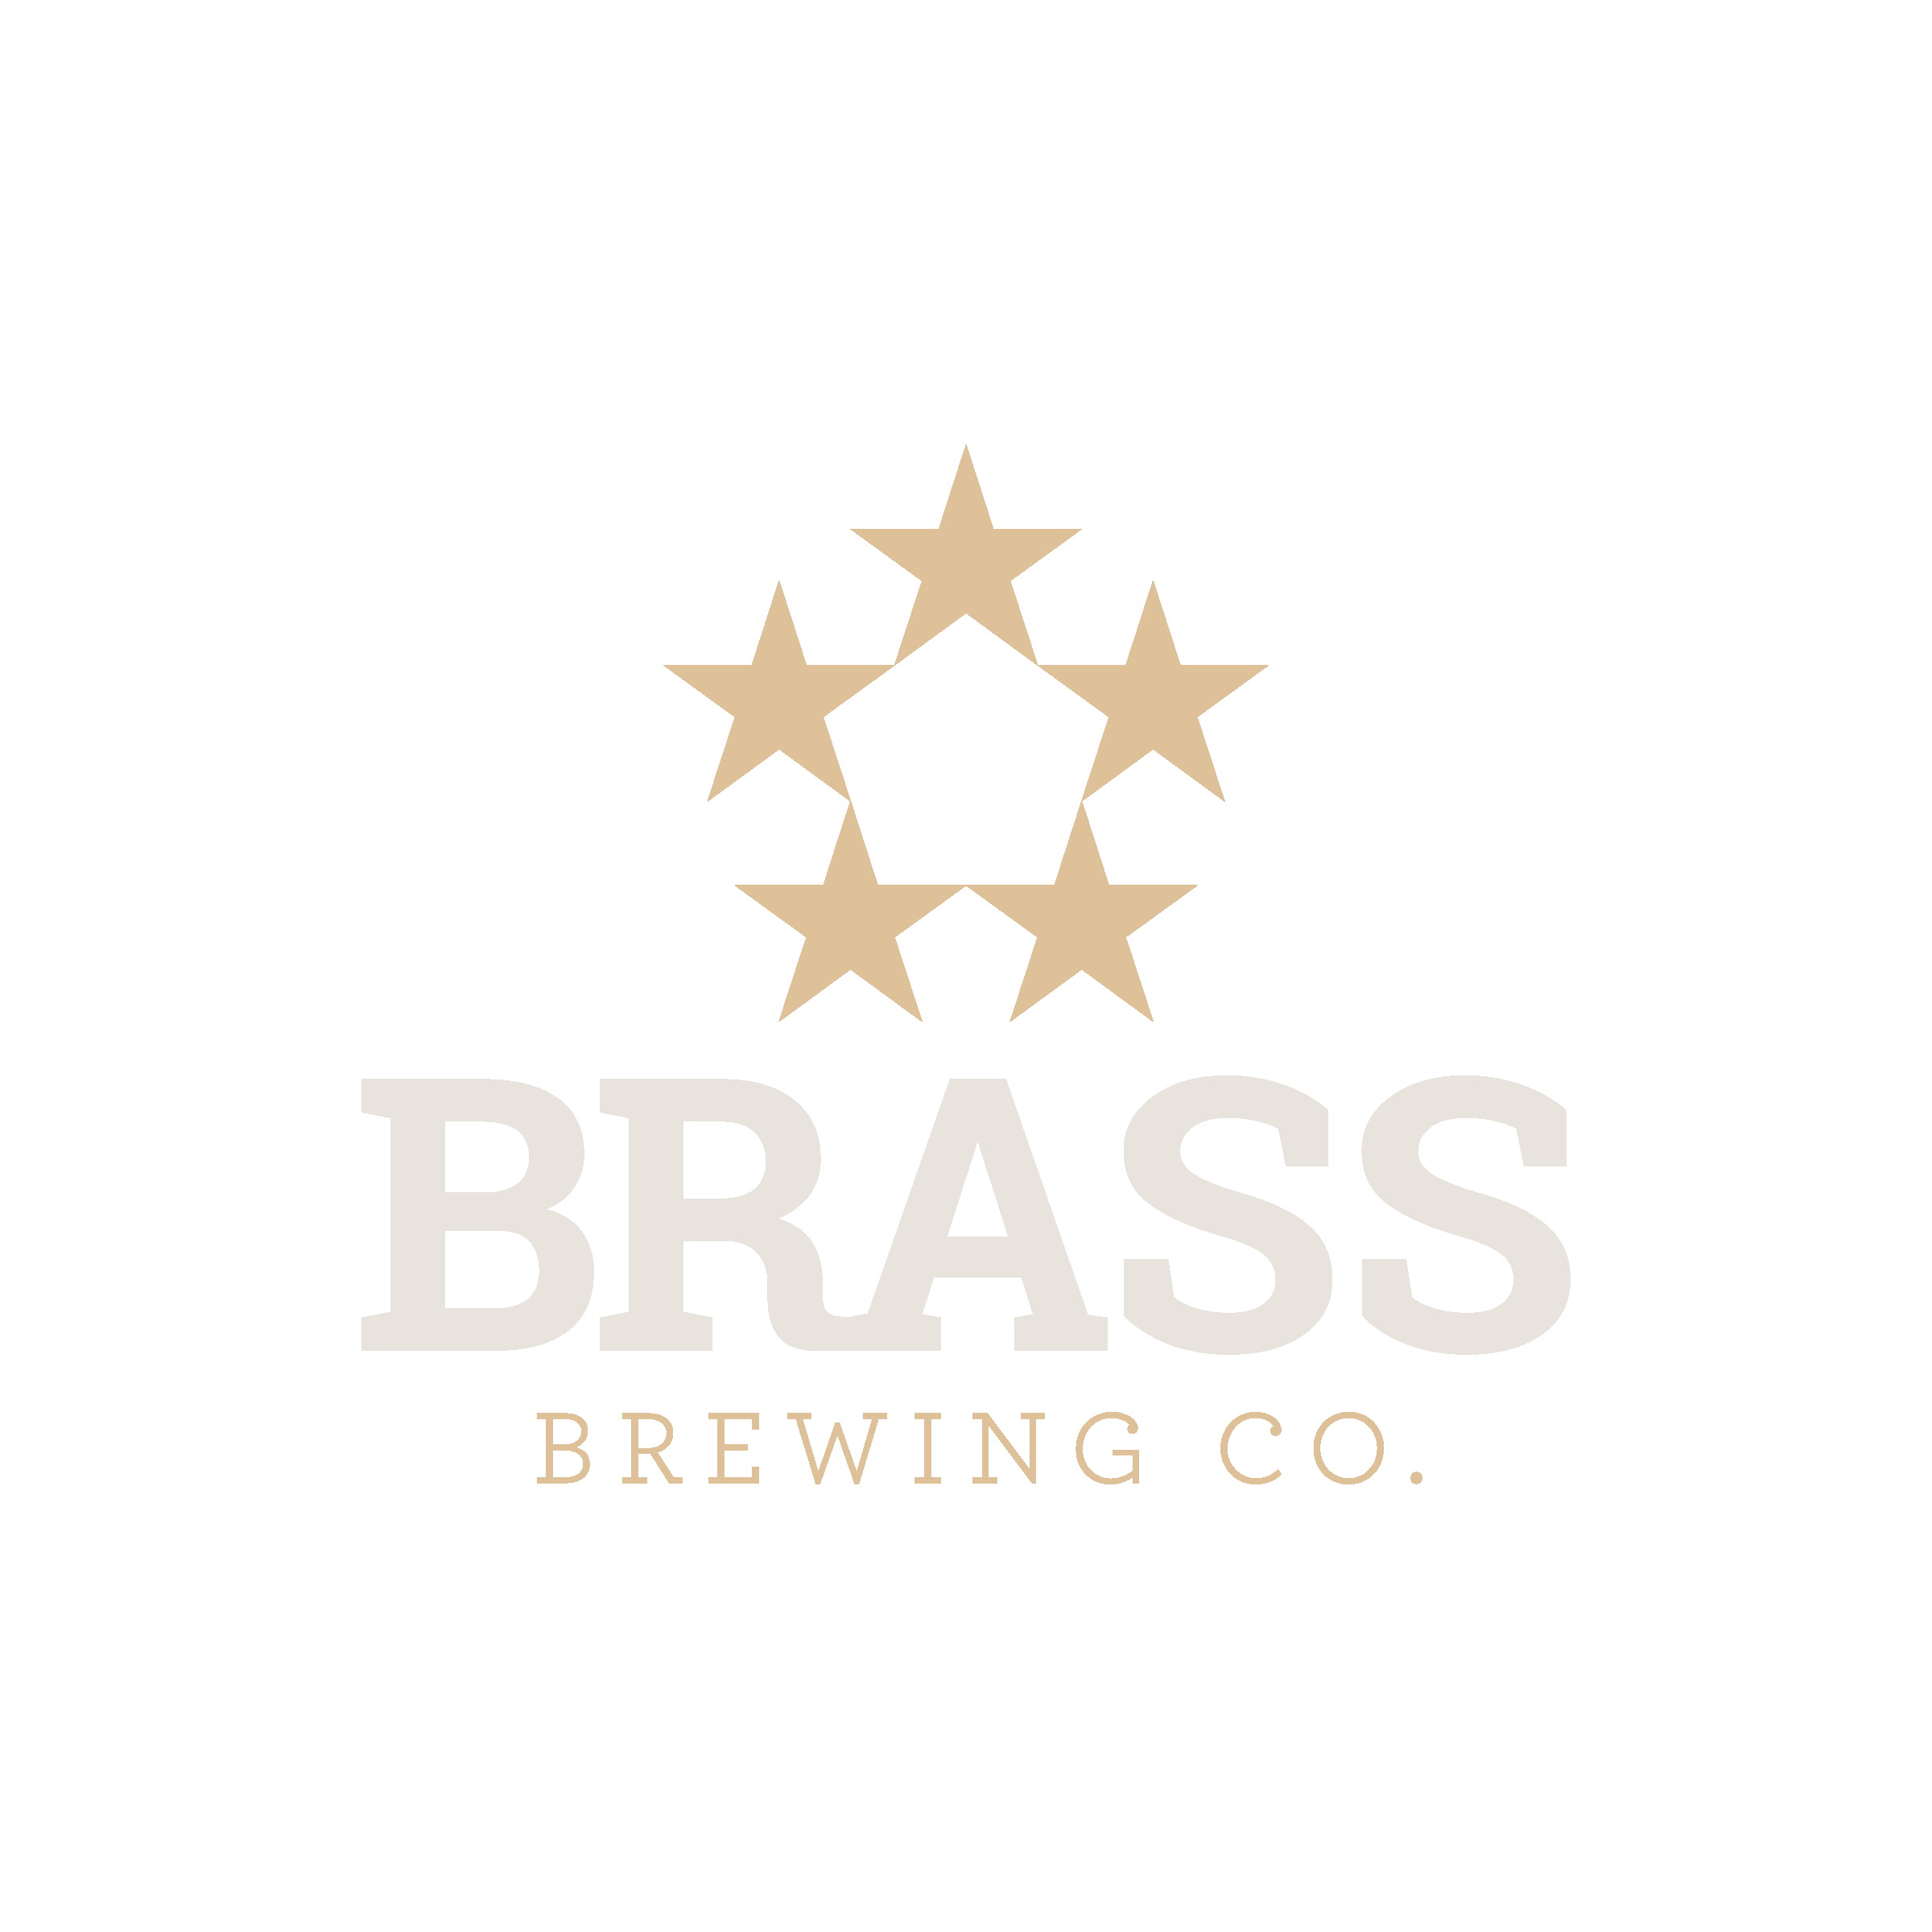 Brass Brewing Co